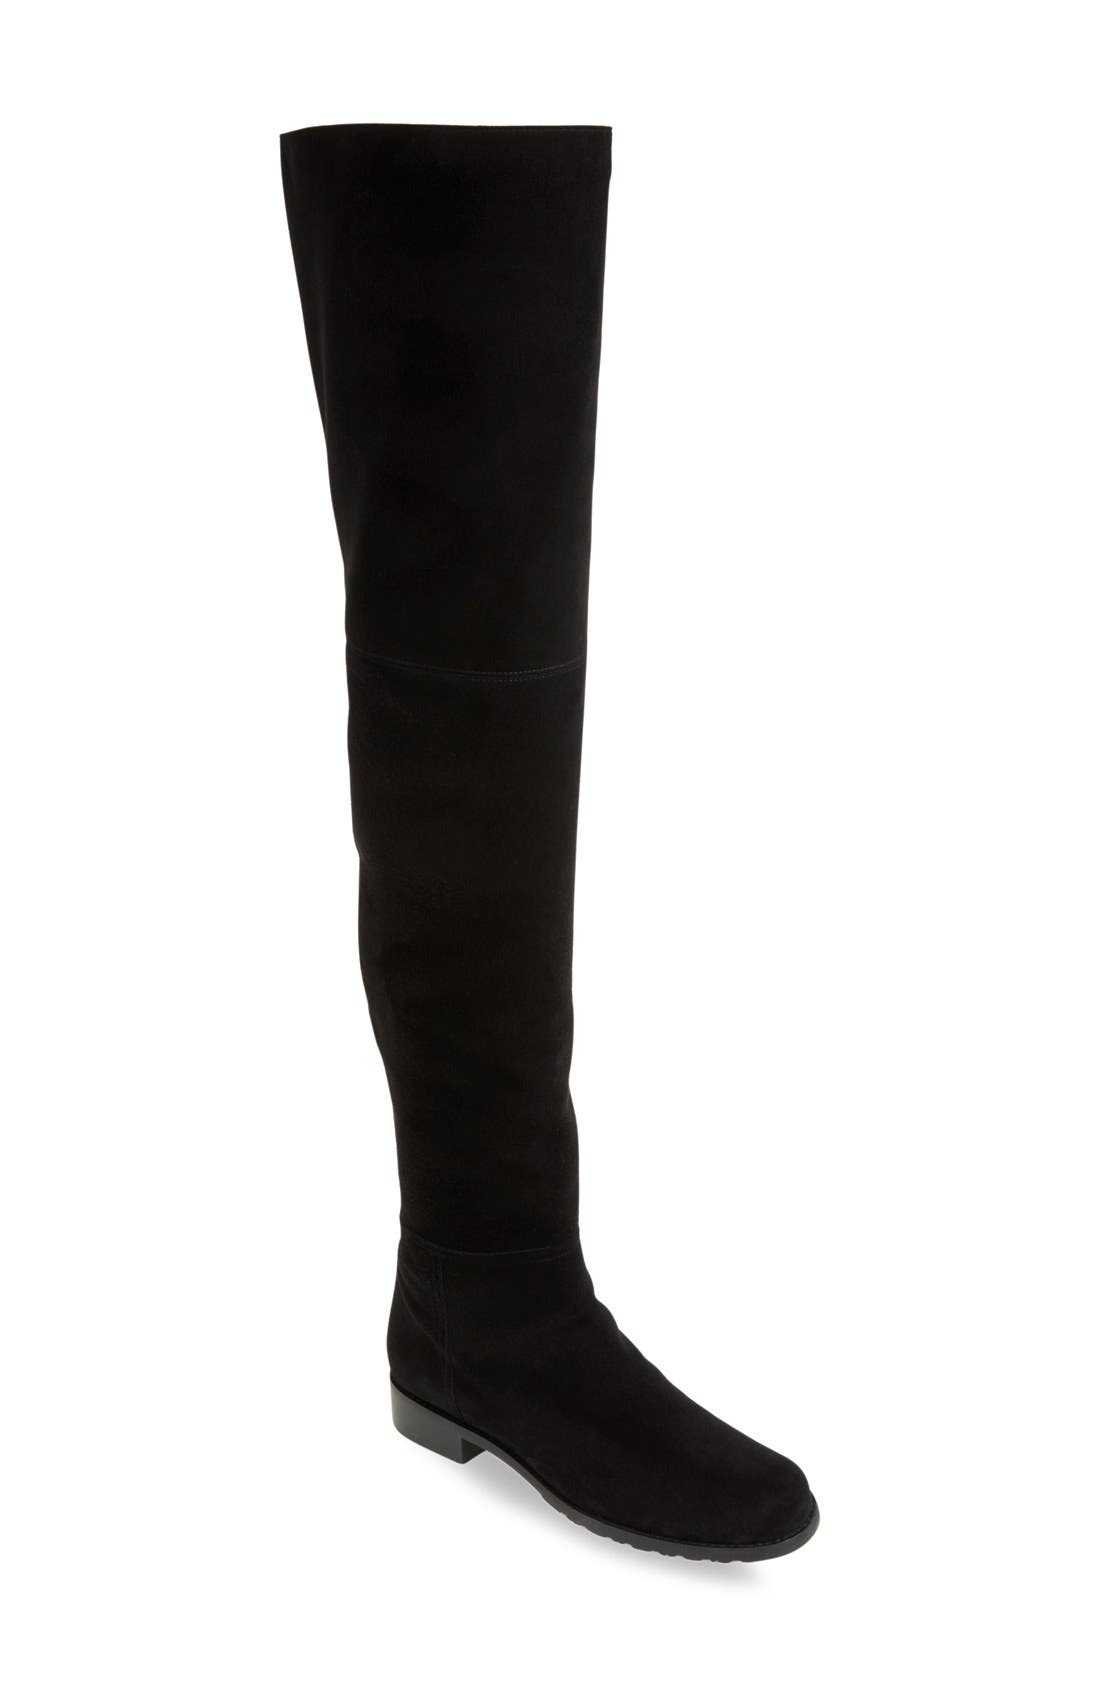 Main Image - Stuart Weitzman 'Hilo' Thigh High Boot (Women) (Nordstrom Exclusive)